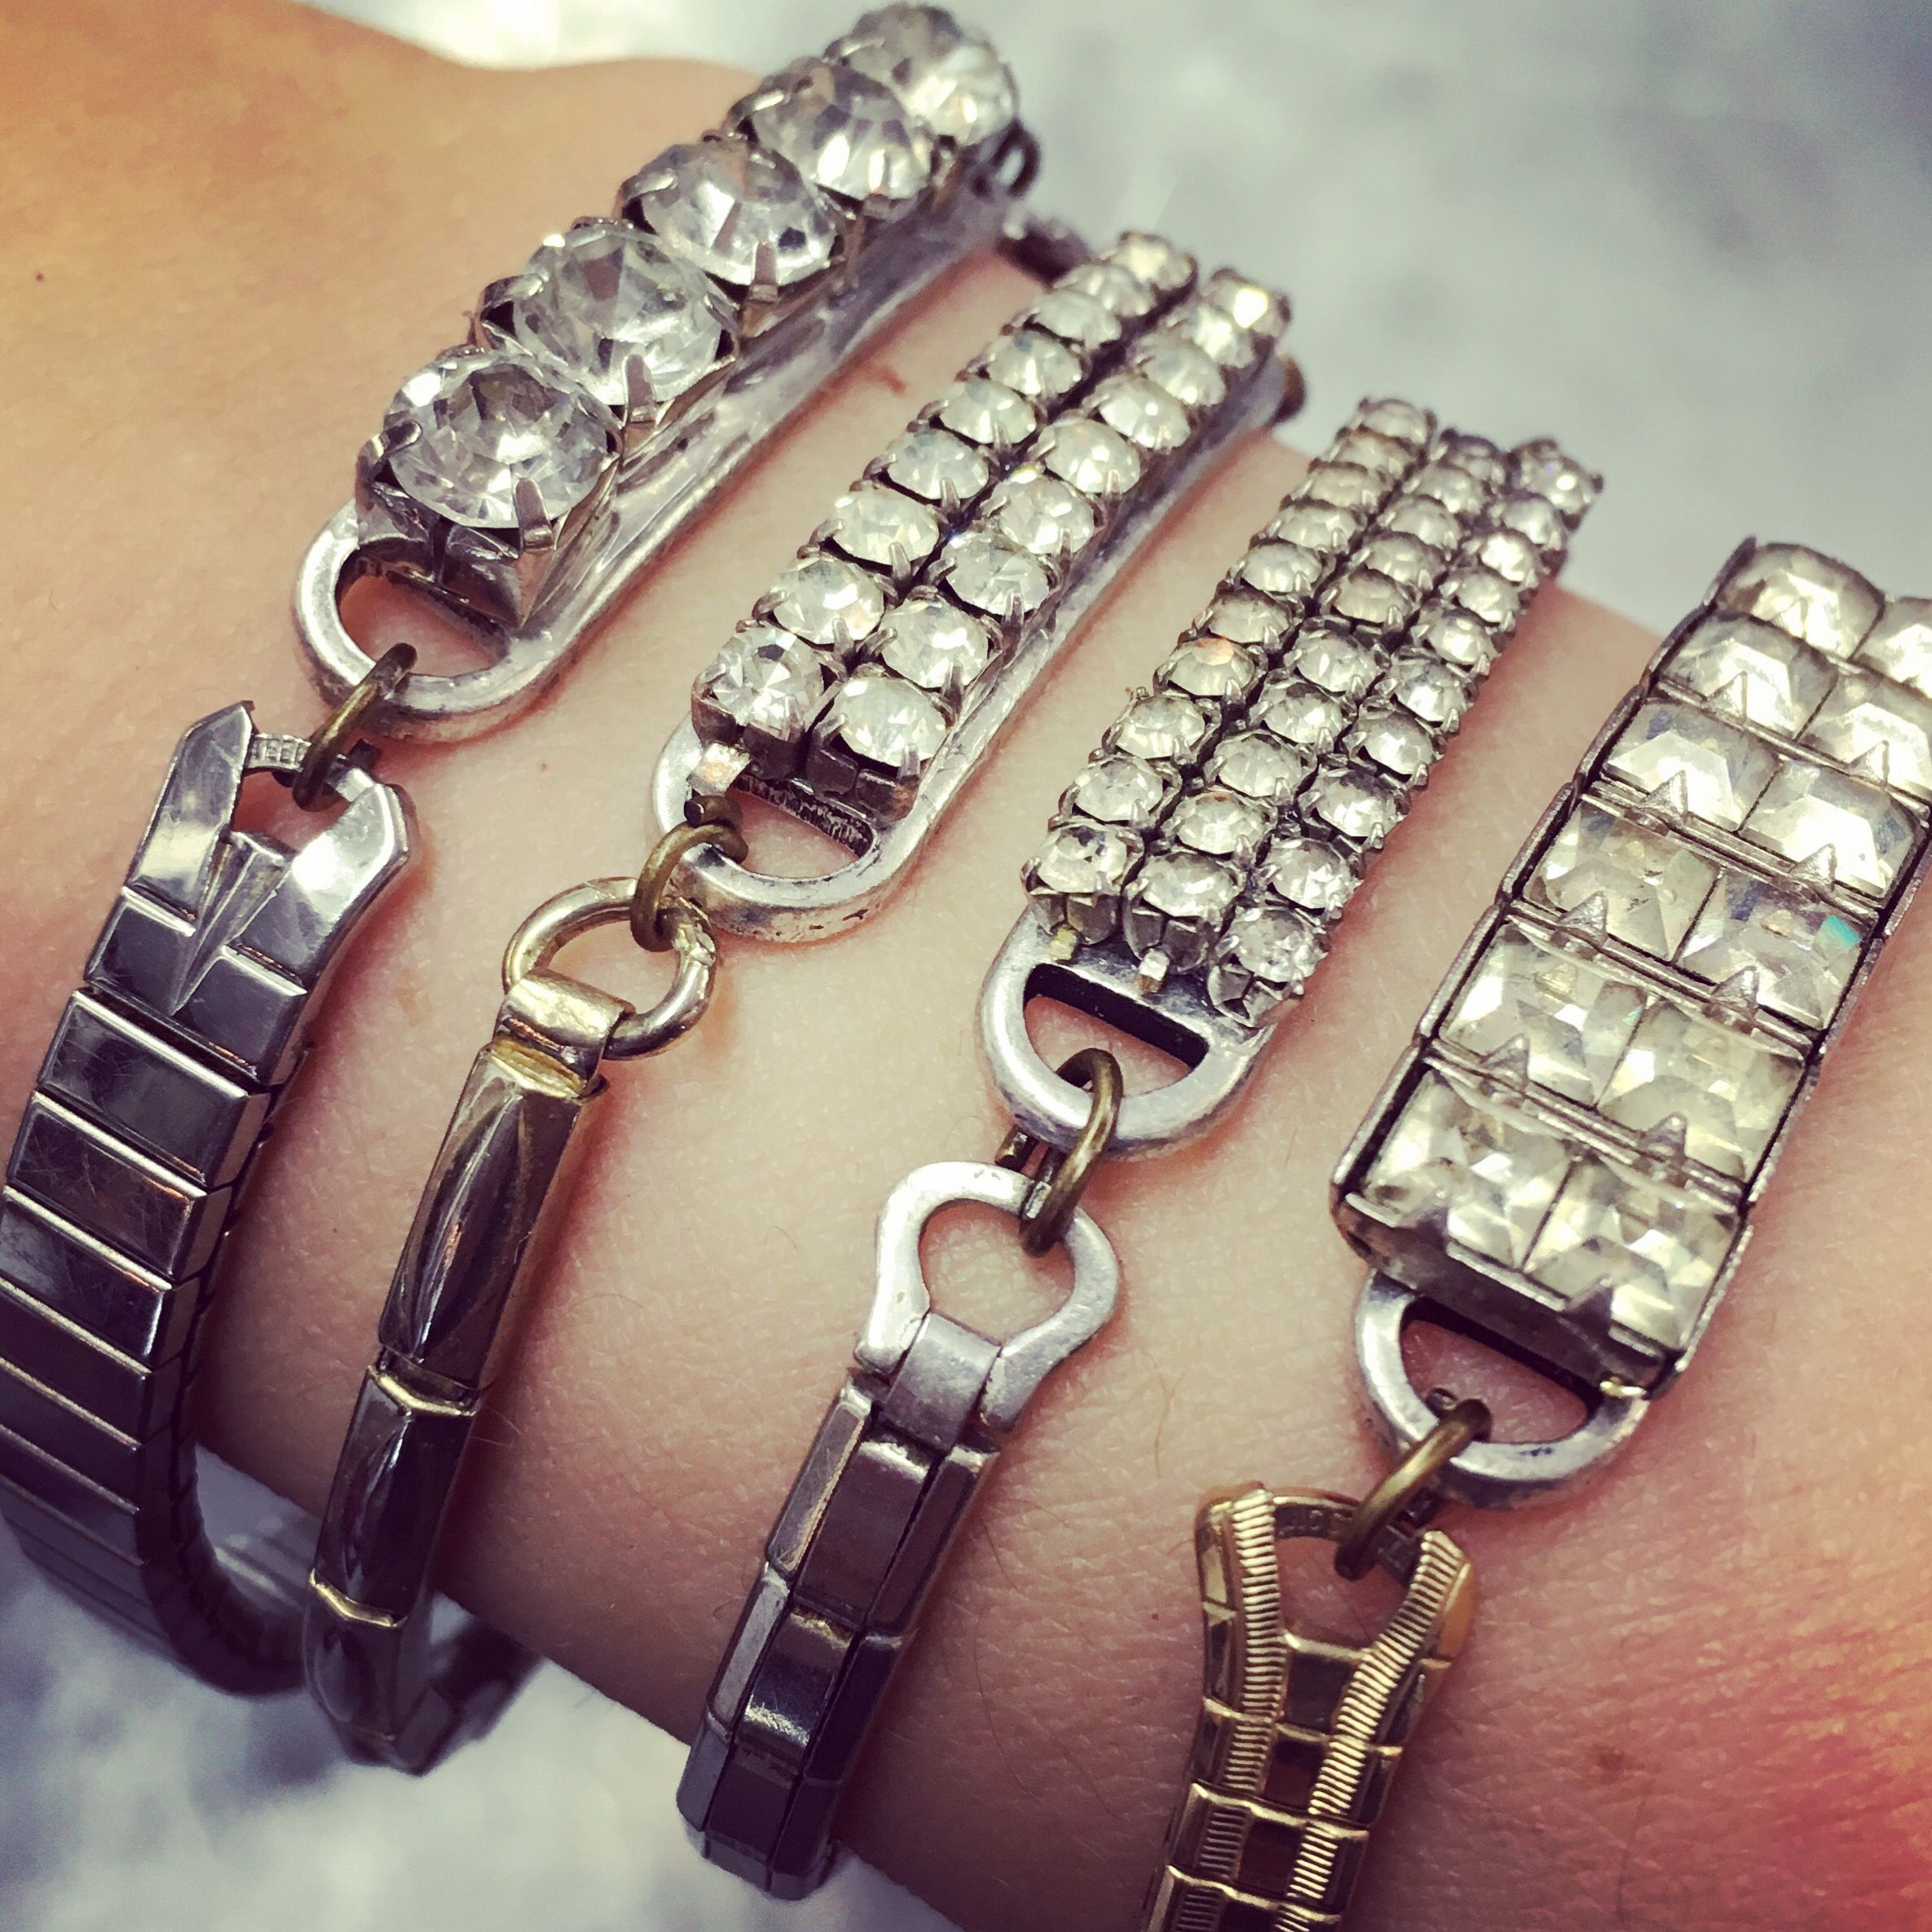 Serious arm candy at the Agoura Antique Mart! How cool are theses bracelets made from vintage watch bands?!